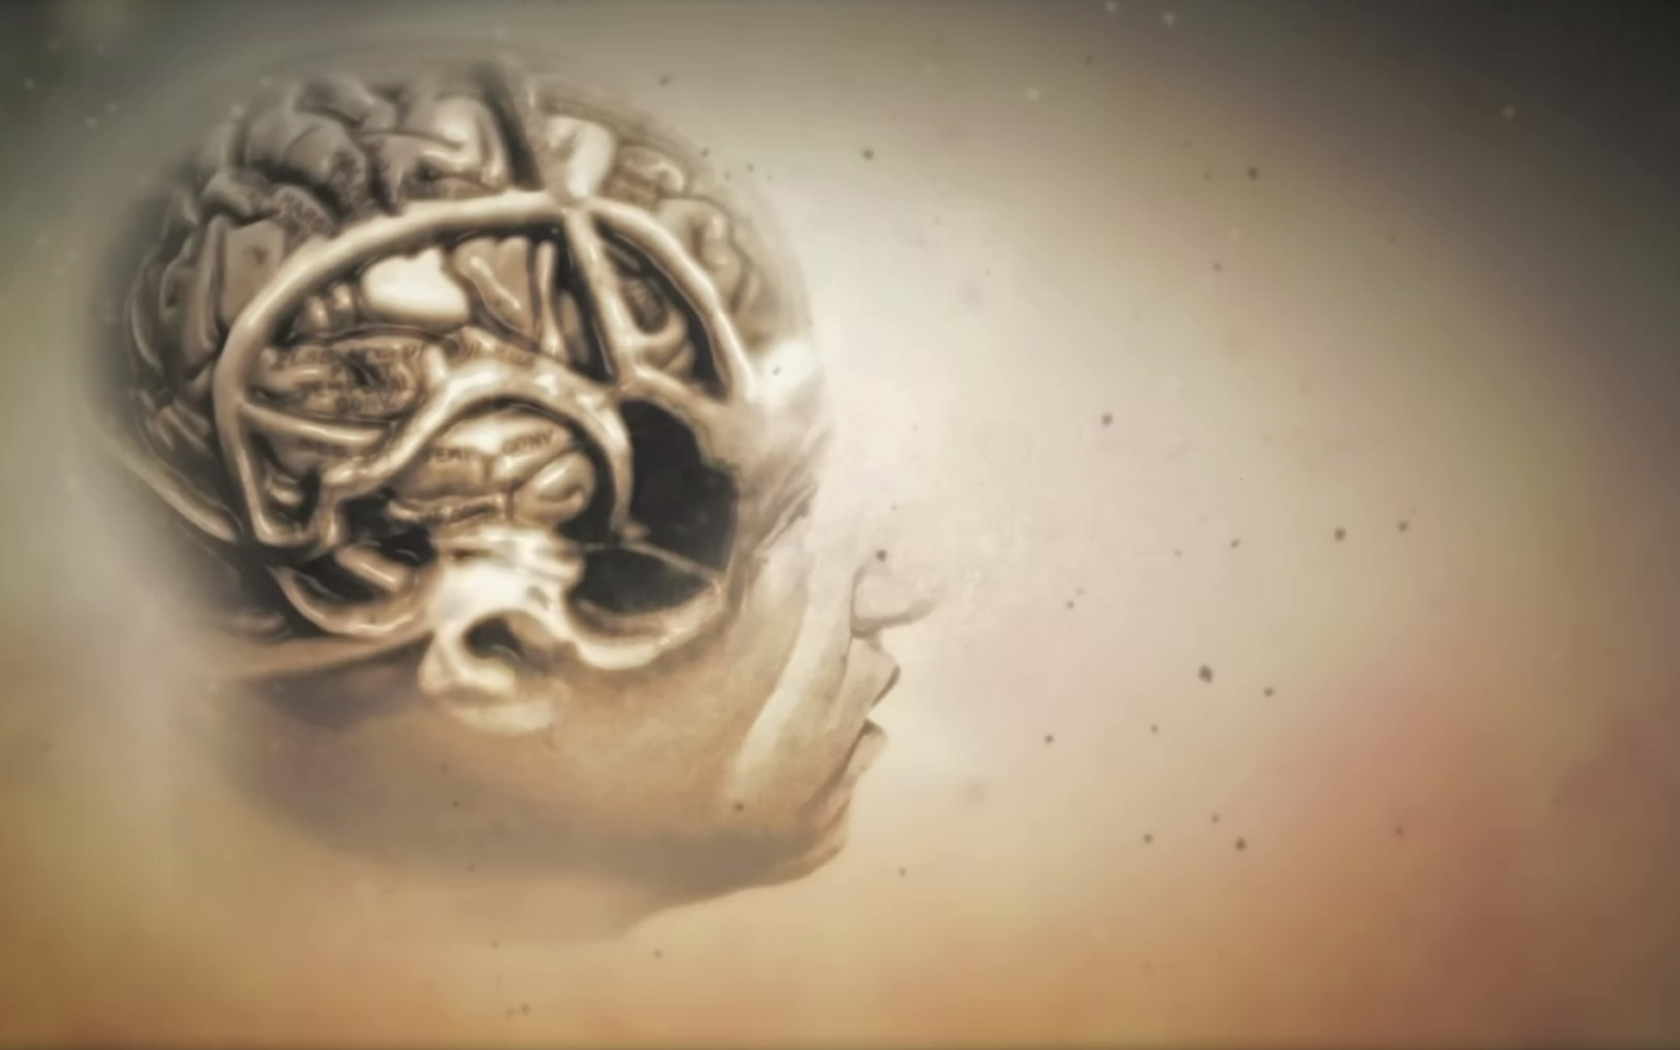 Image For 3d Brain 1080p Hd Wallpaper Wp6806972 Dr House Opening 1084358 Hd Wallpaper Backgrounds Download